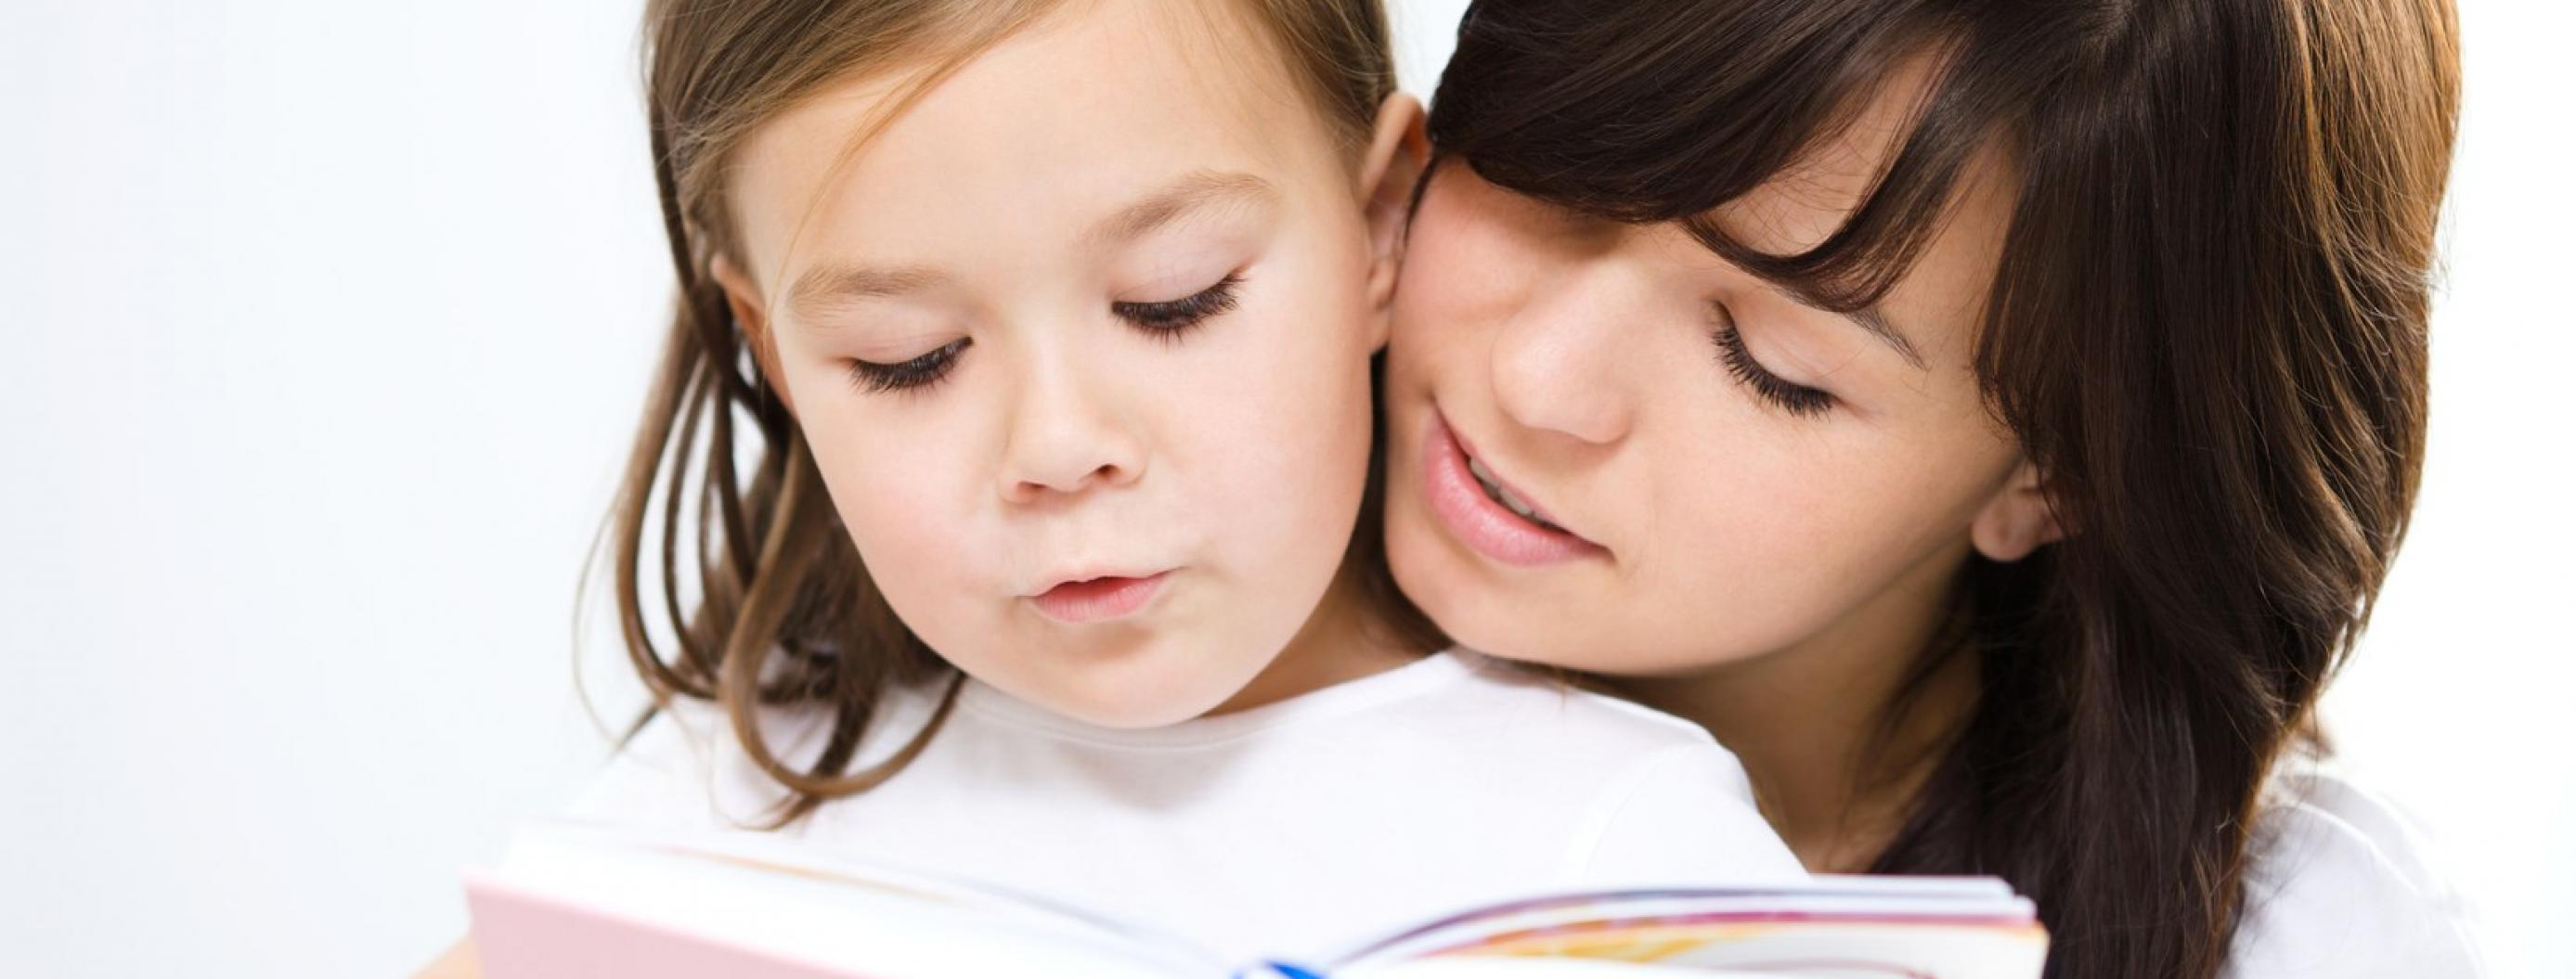 If You Want to Raise Successful Kids, Read to Them Like This